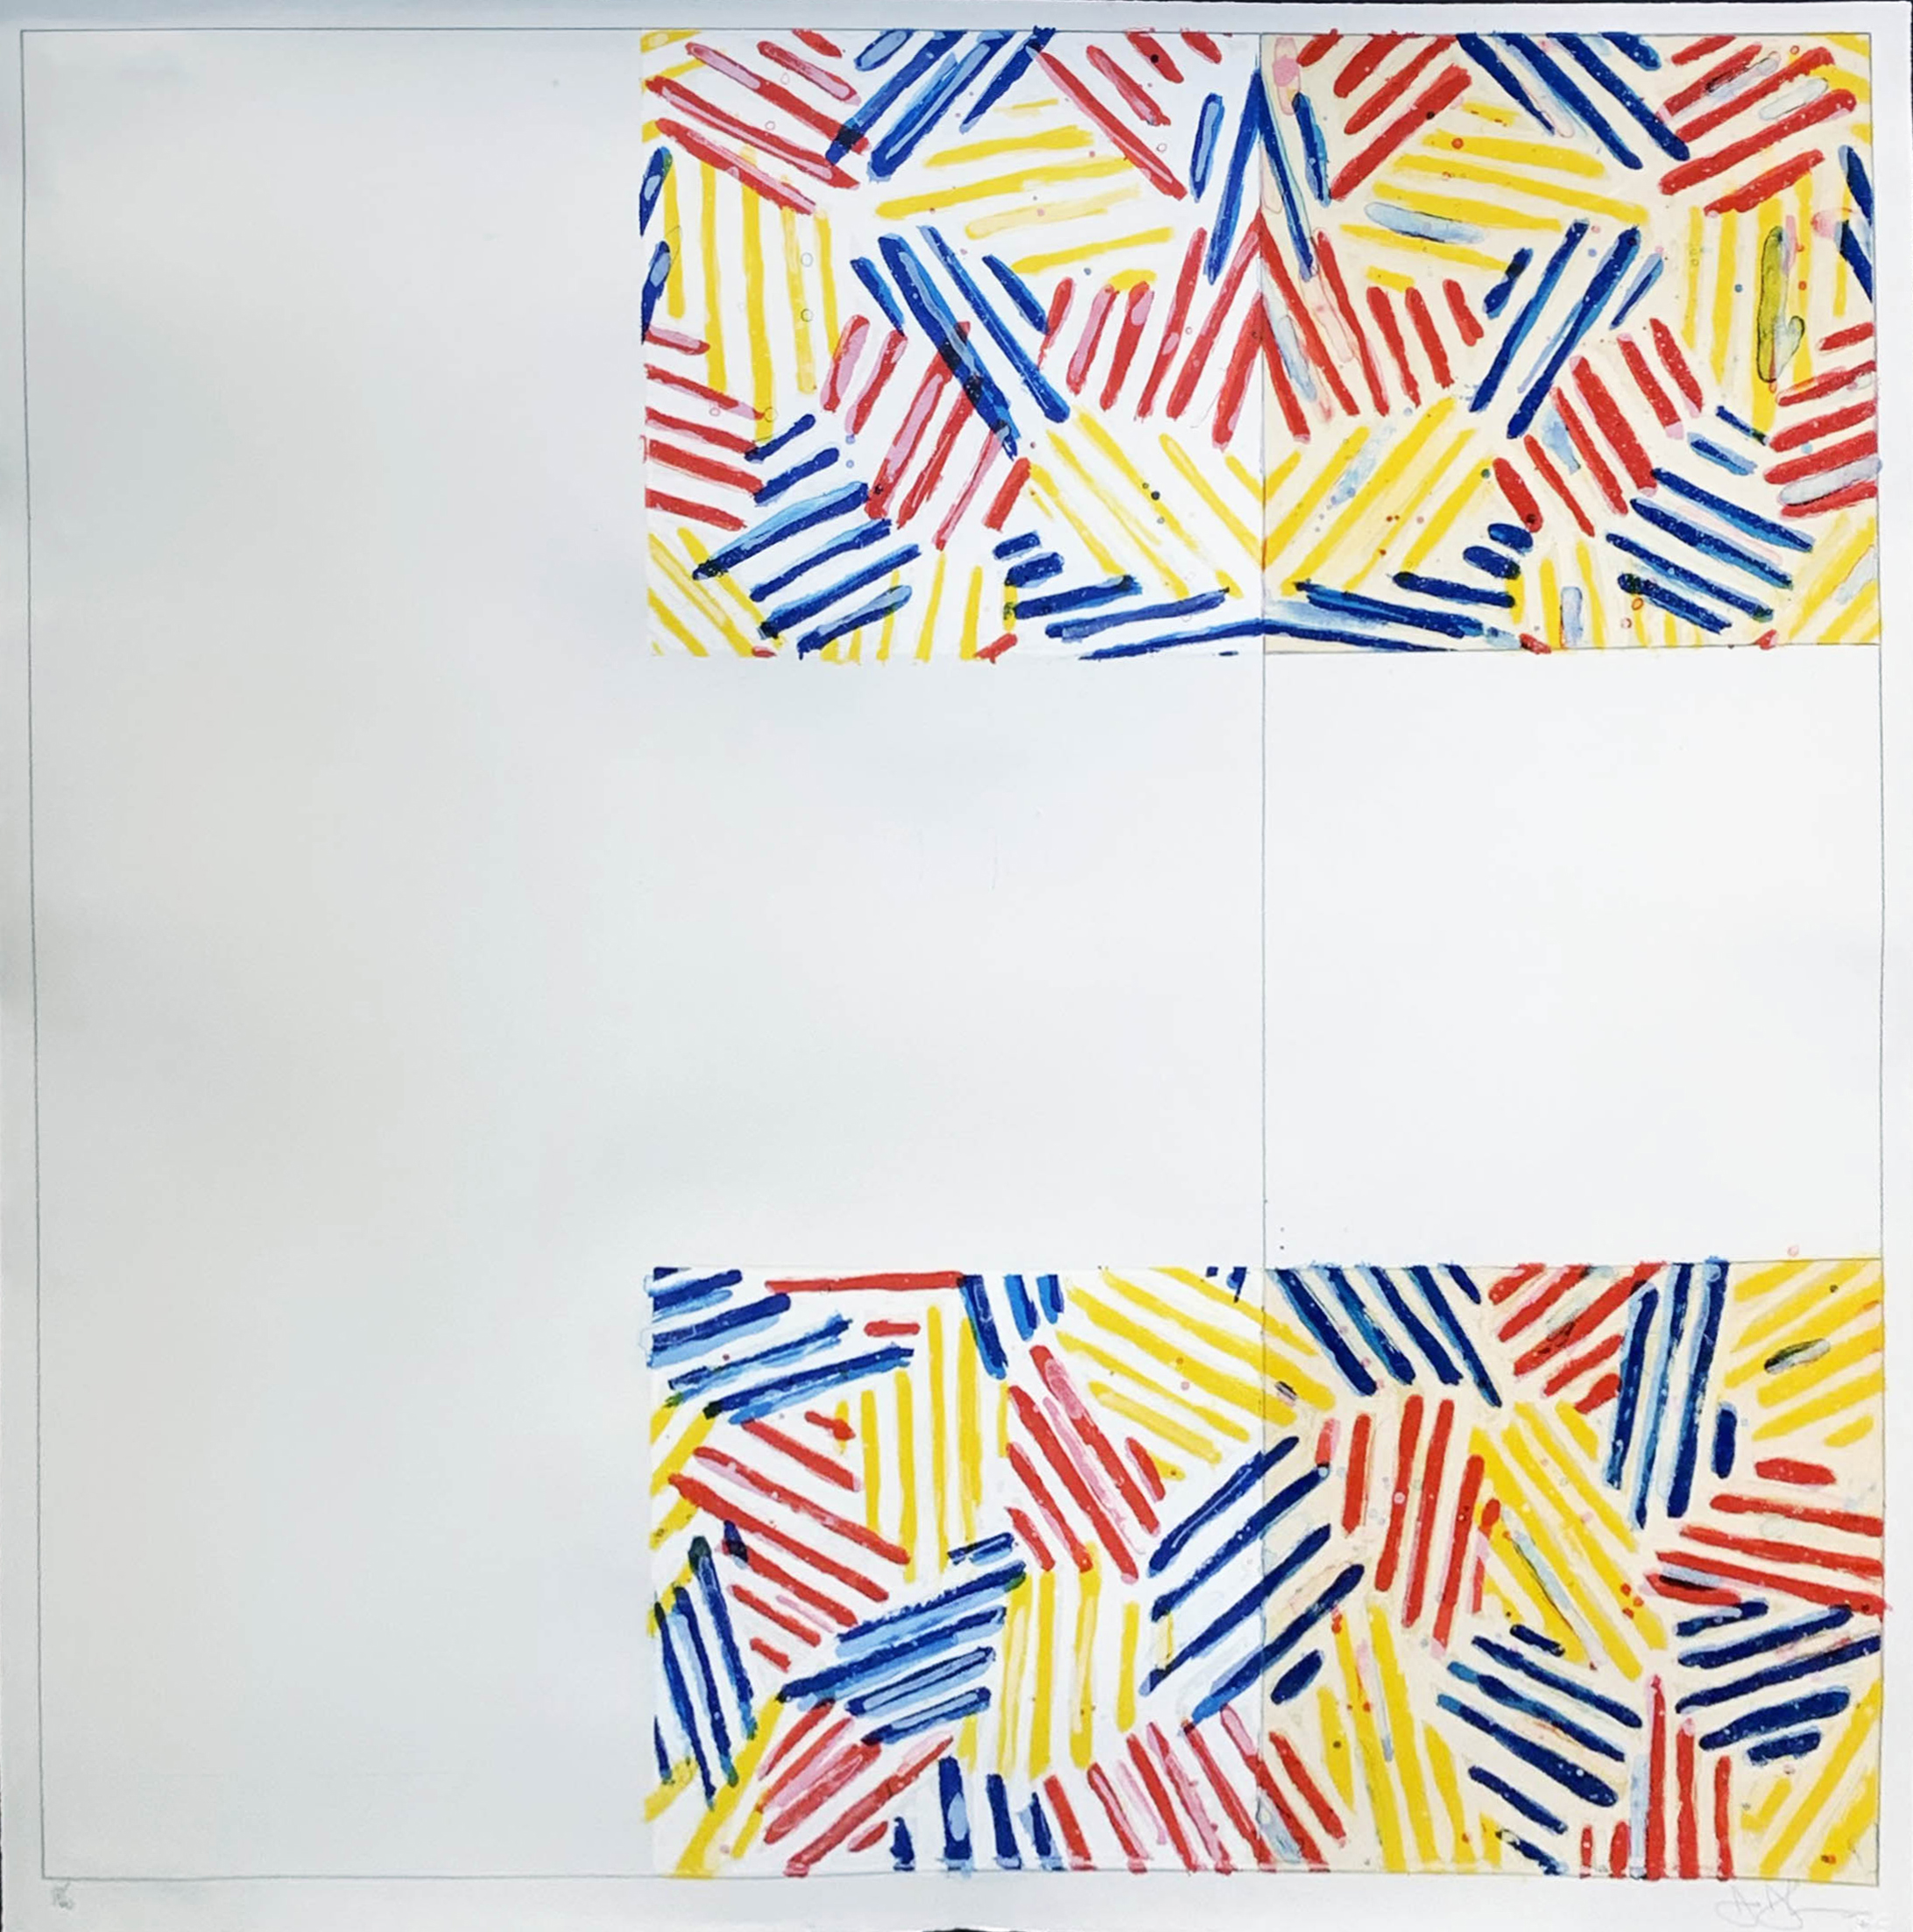 #2 (after Untitled 1975) by Jasper Johns